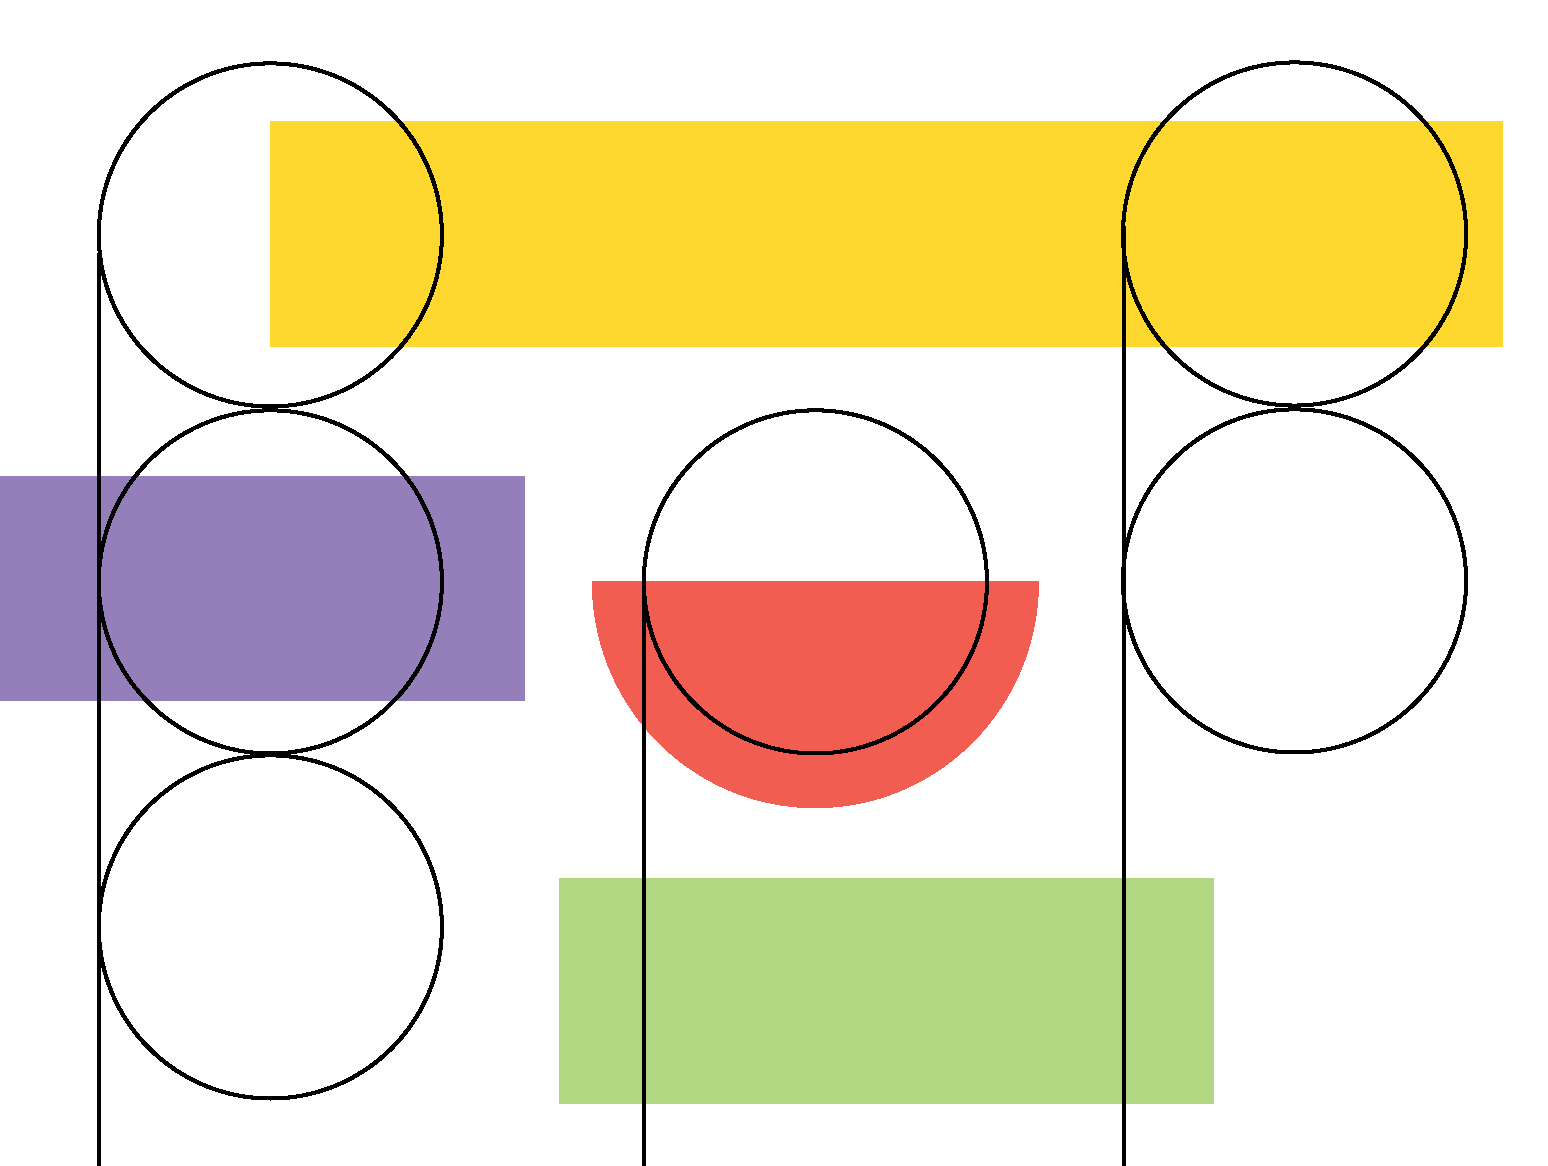 Image of outlined circles against colorful shapes